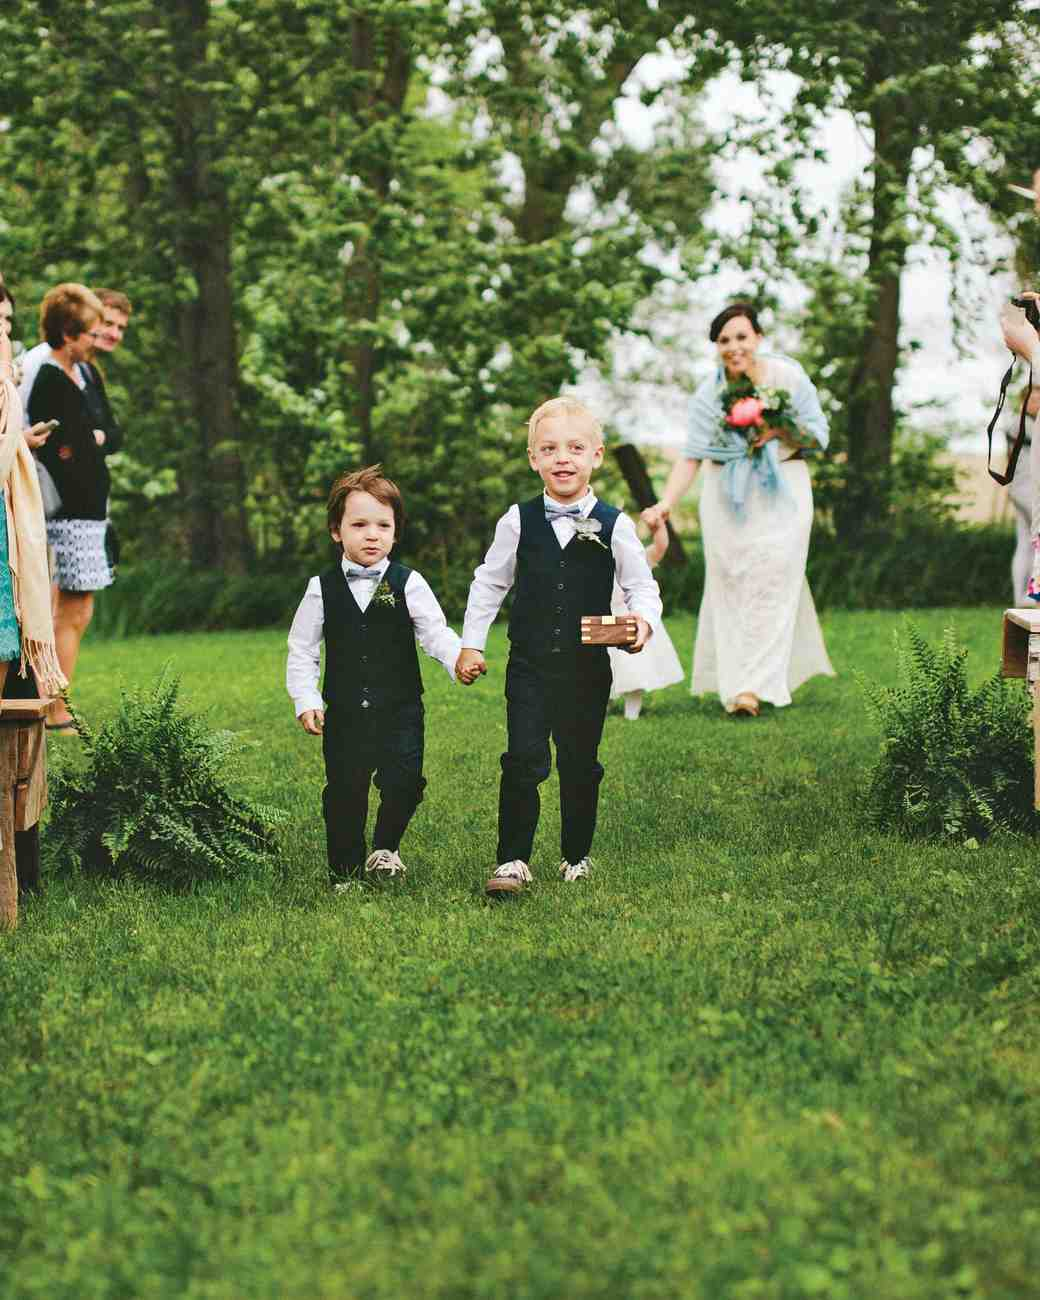 chase-drew-real-wedding-ring-bearers-walking-down-aisle.jpg